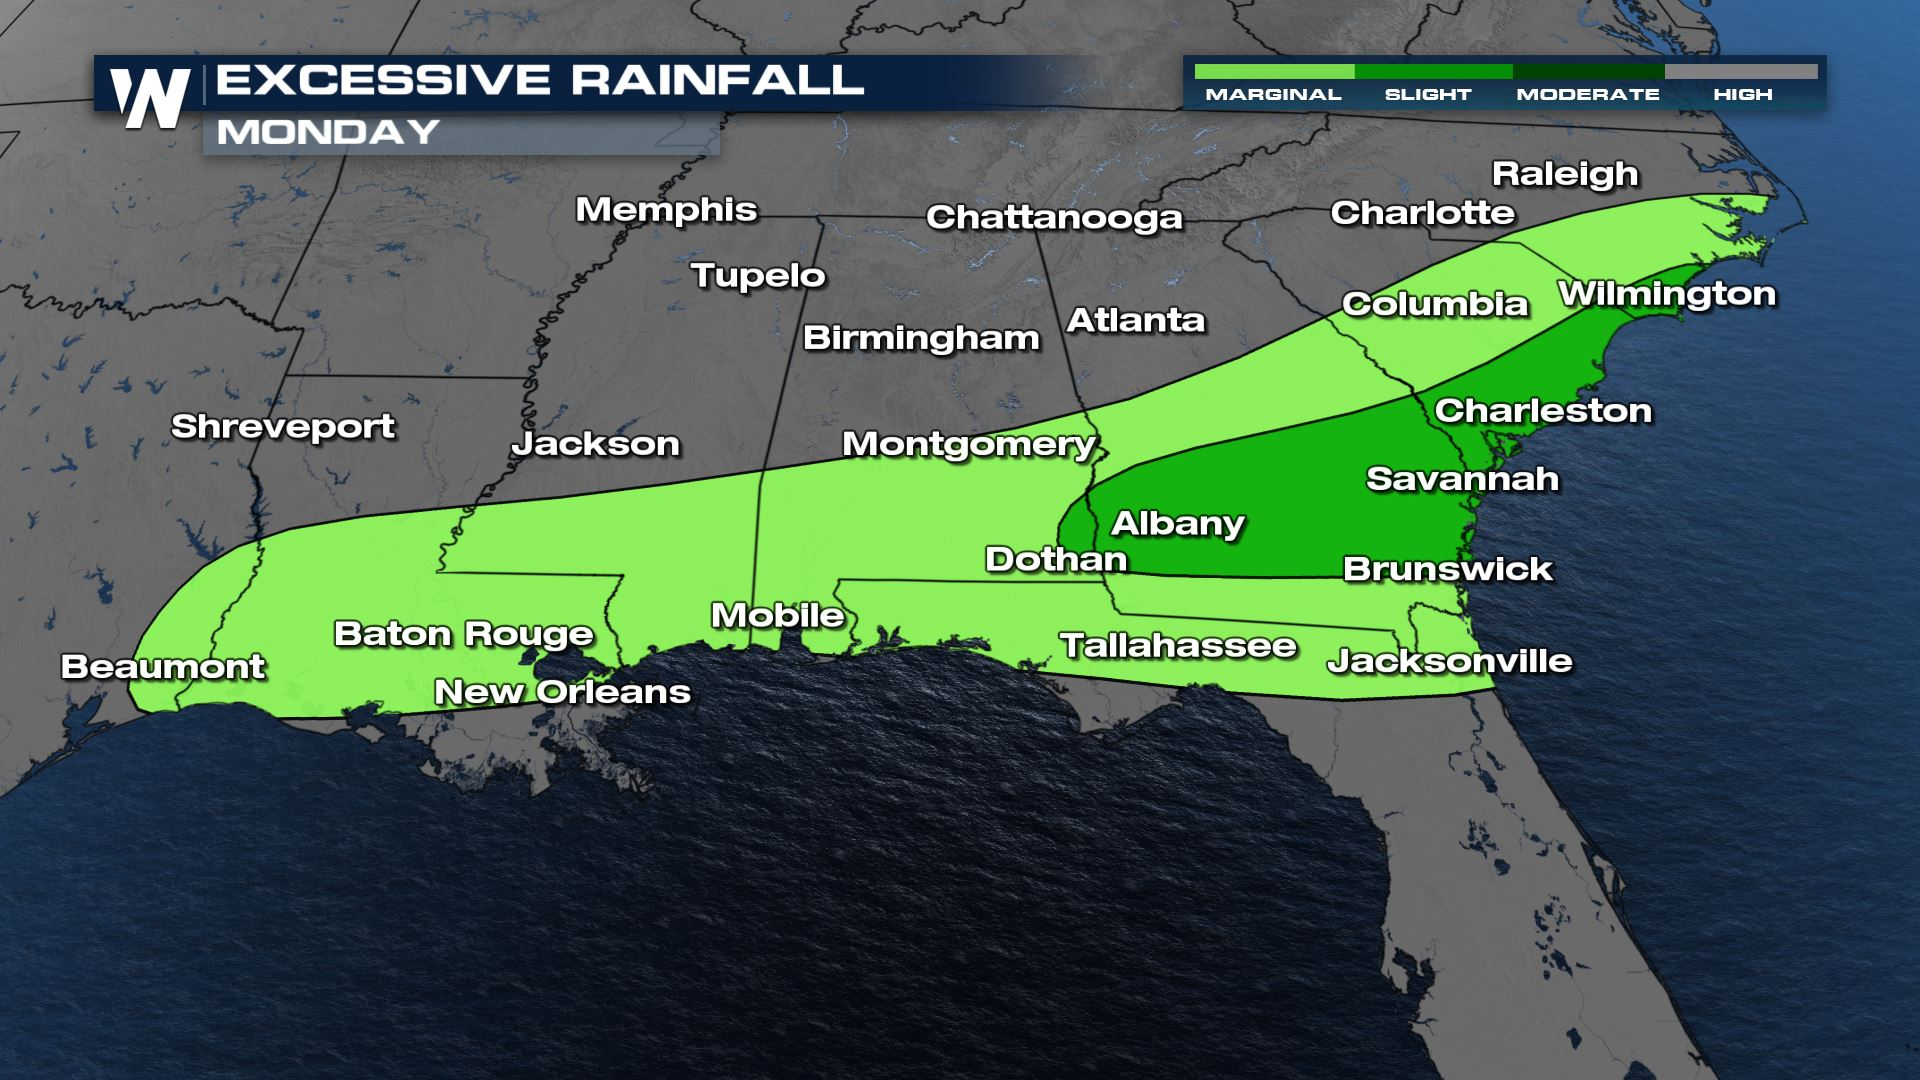 Stormy Days Ahead for the South